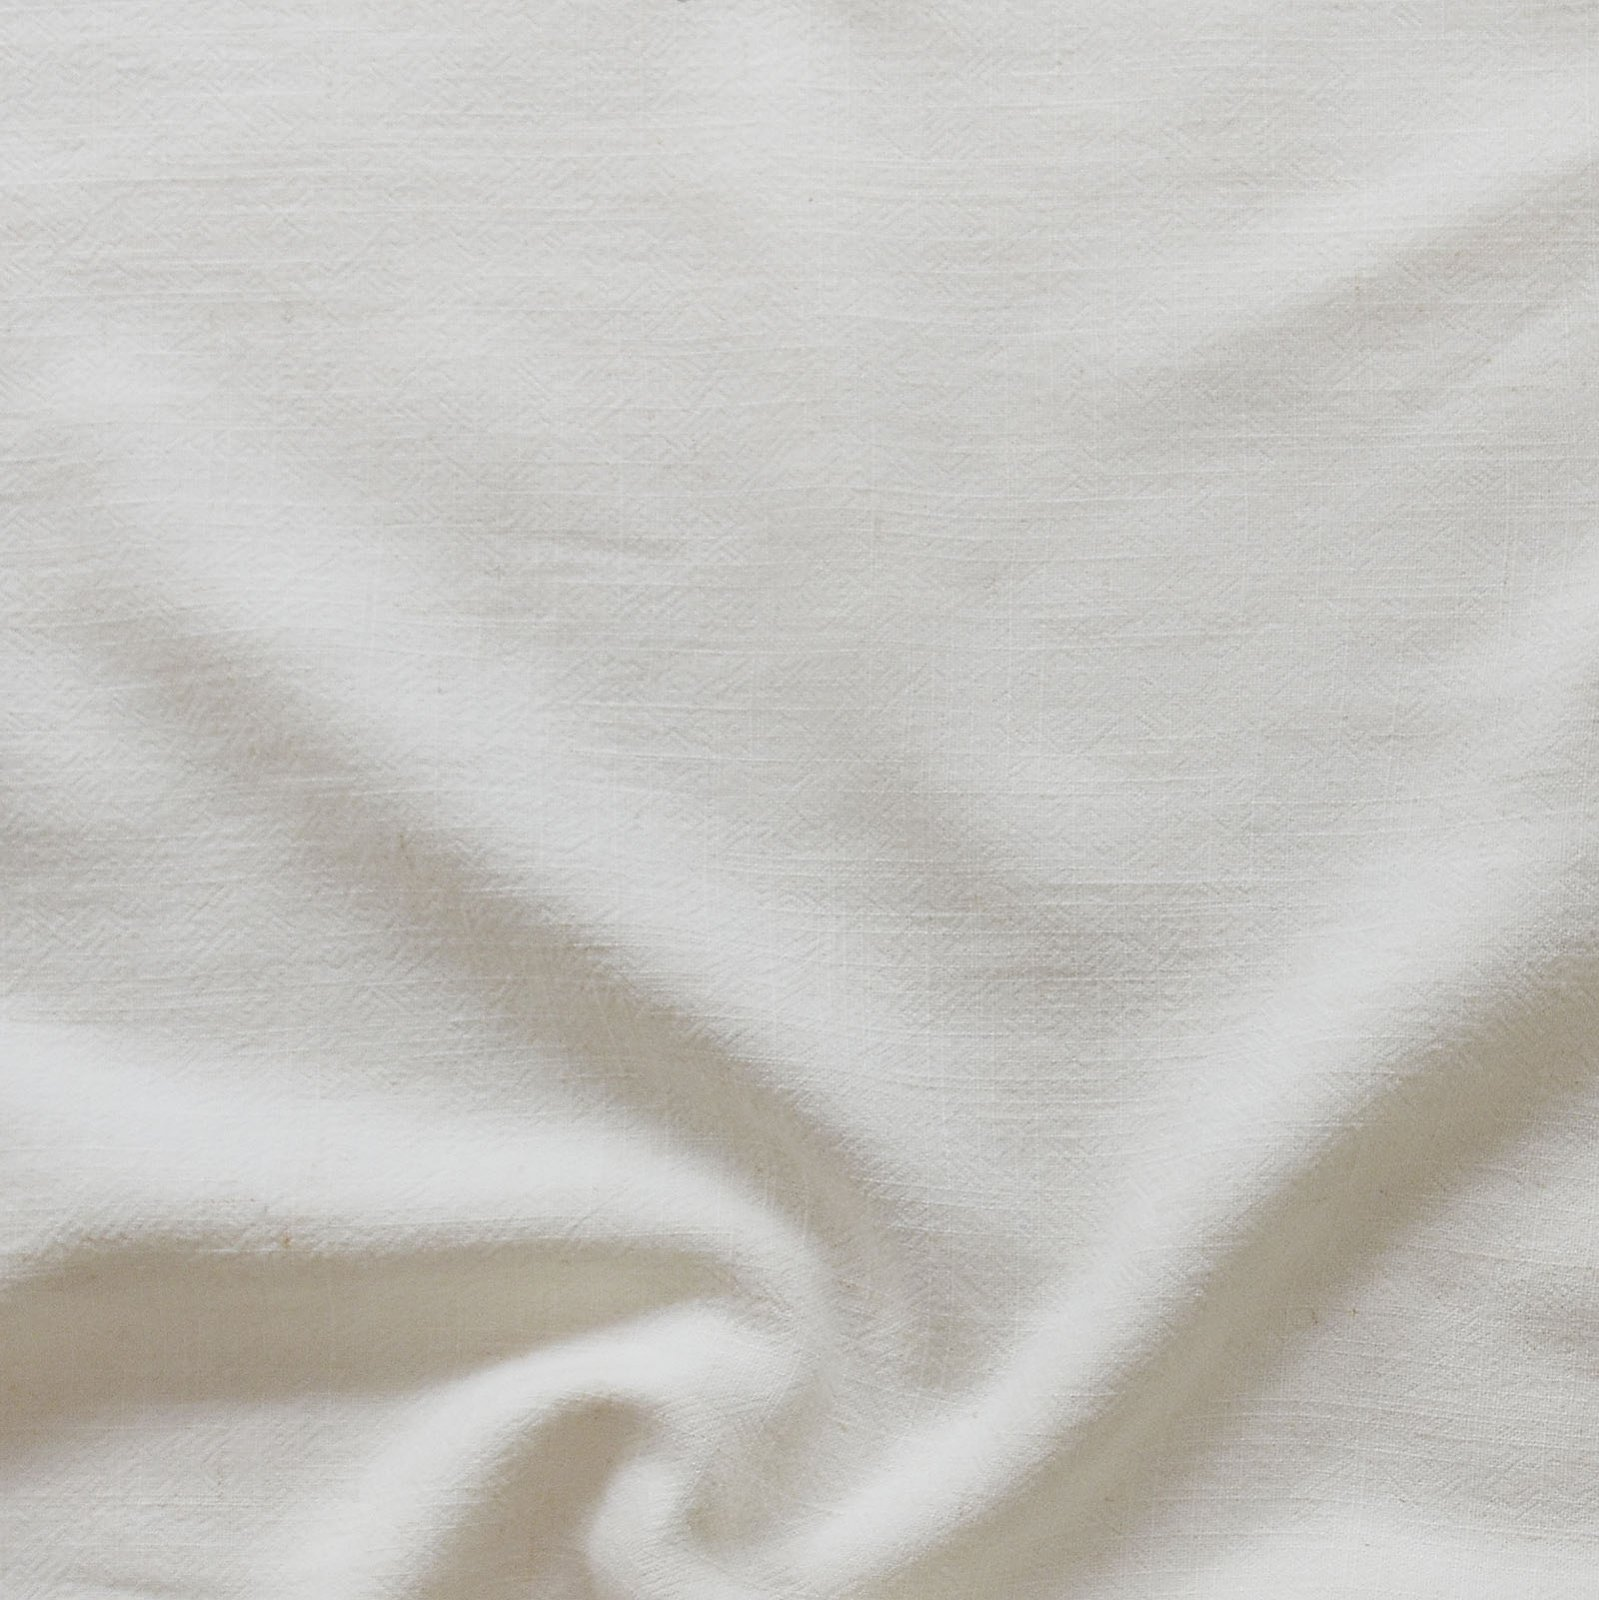 Grace Viscose & Linen Blend - Off White